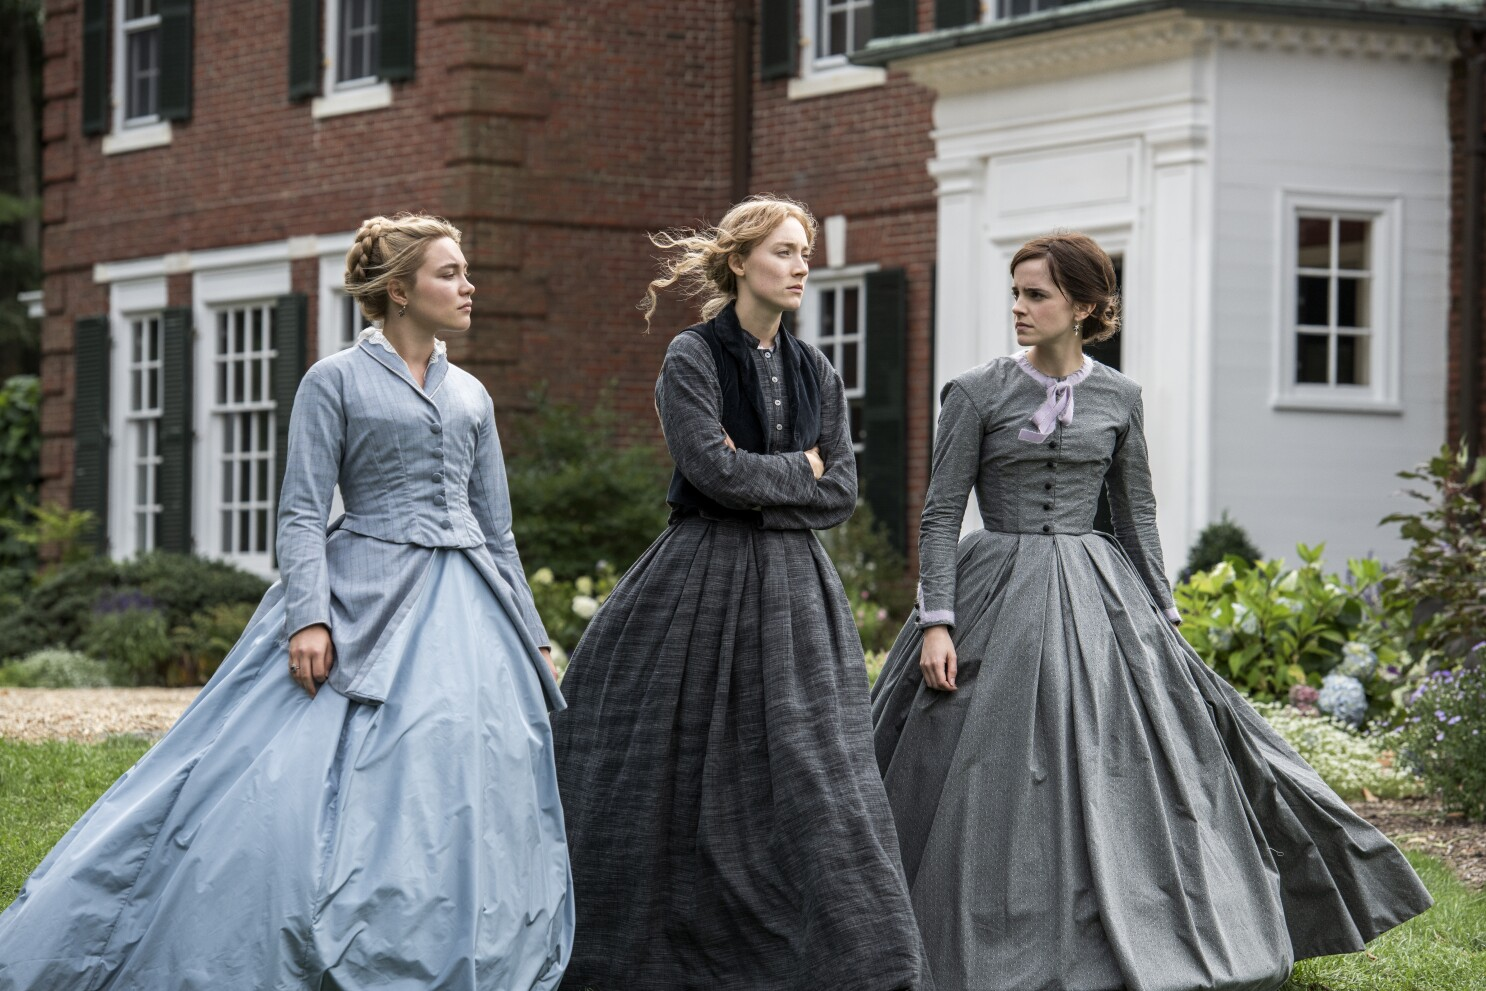 Oscars 2020 Little Women Wins Only For Costume Design Los Angeles Times